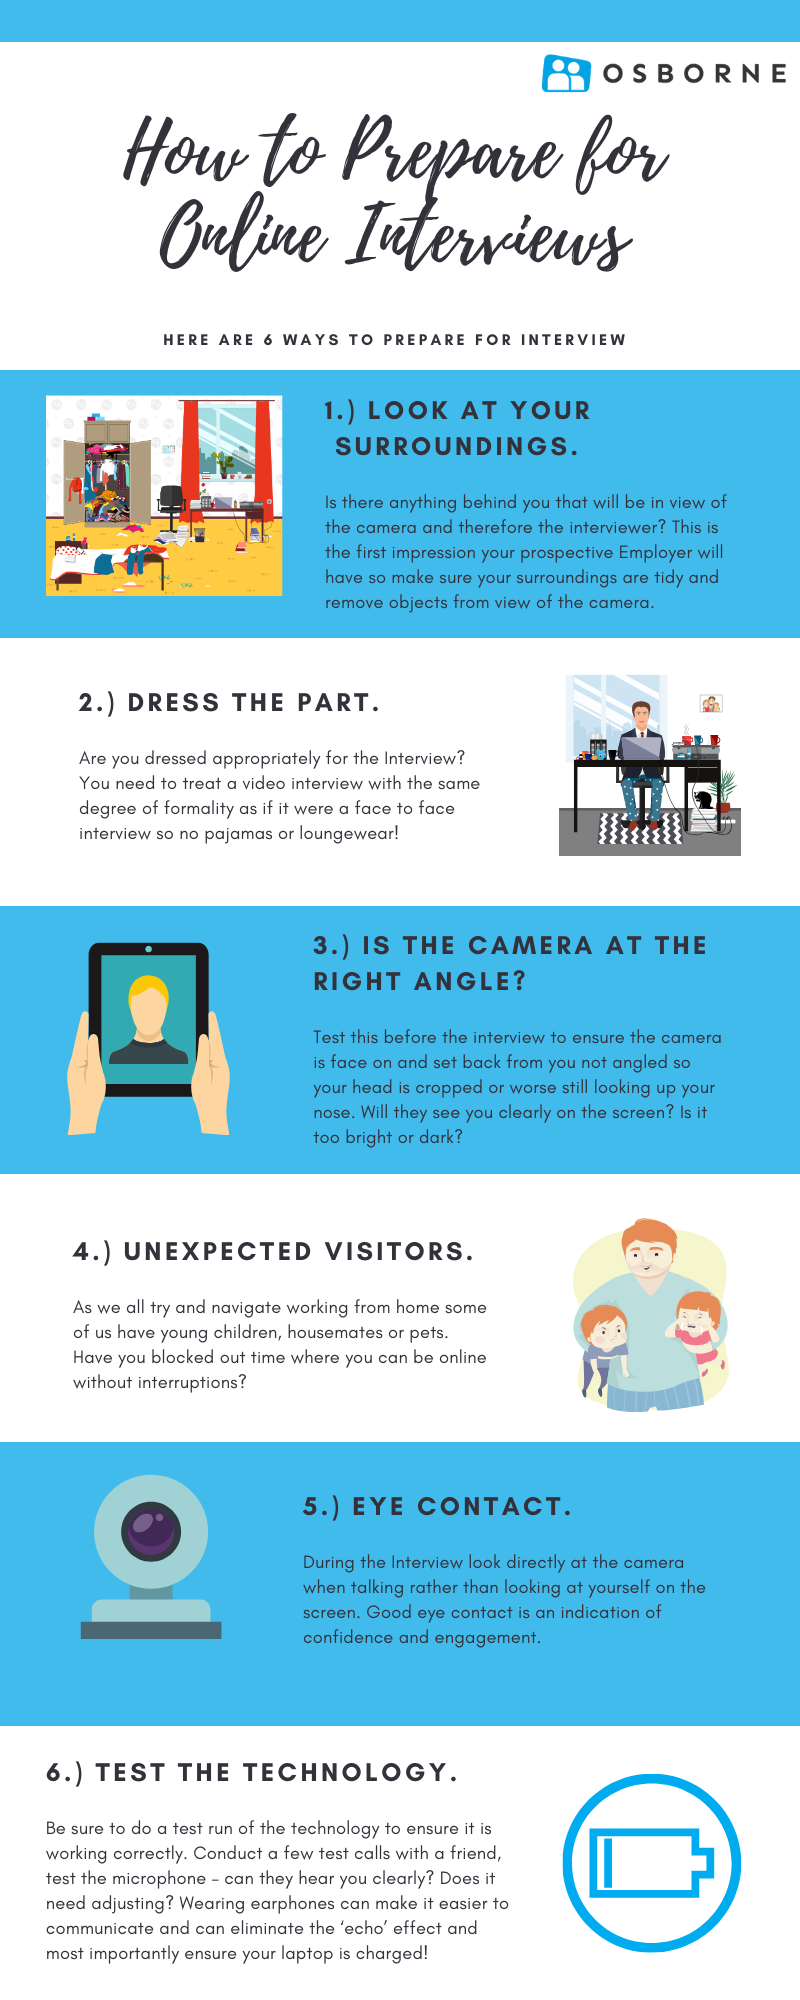 How to prepare for an online interview top tips infographic.